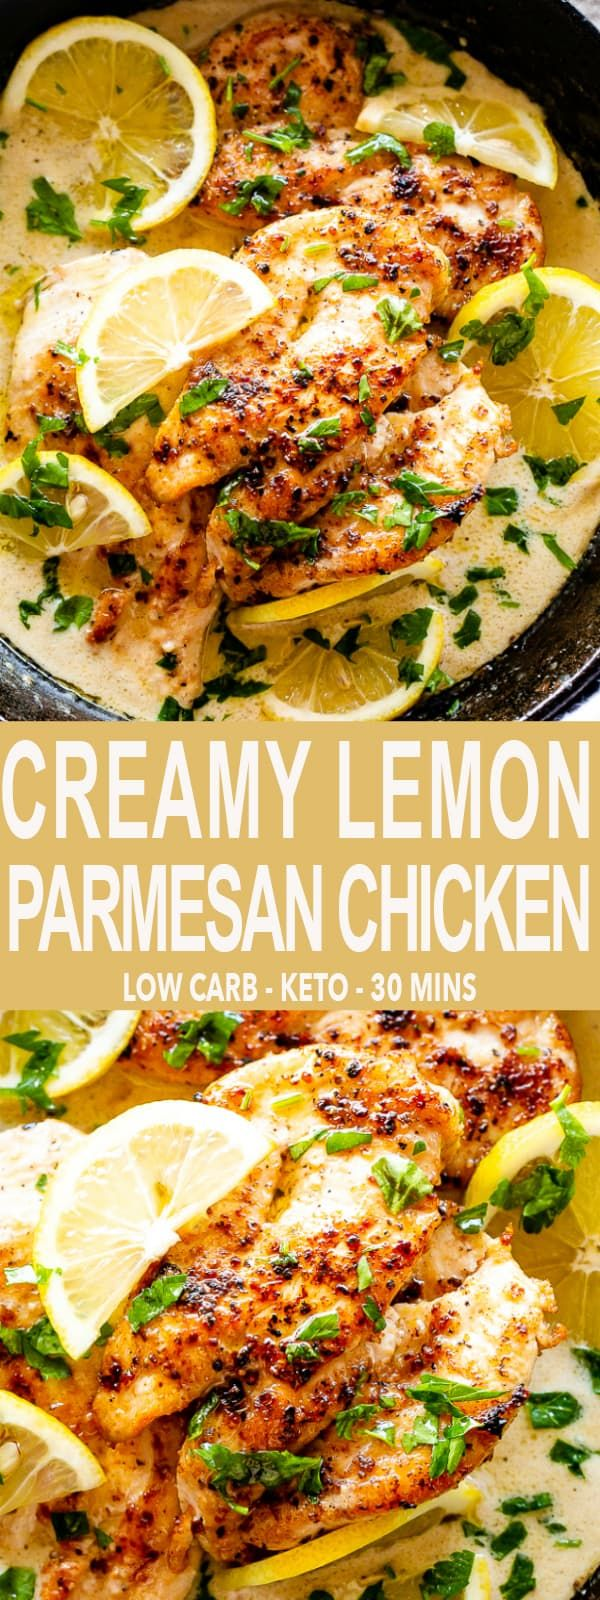 Creamy Lemon Parmesan Chicken | Easy Chicken Breasts Dinner Idea